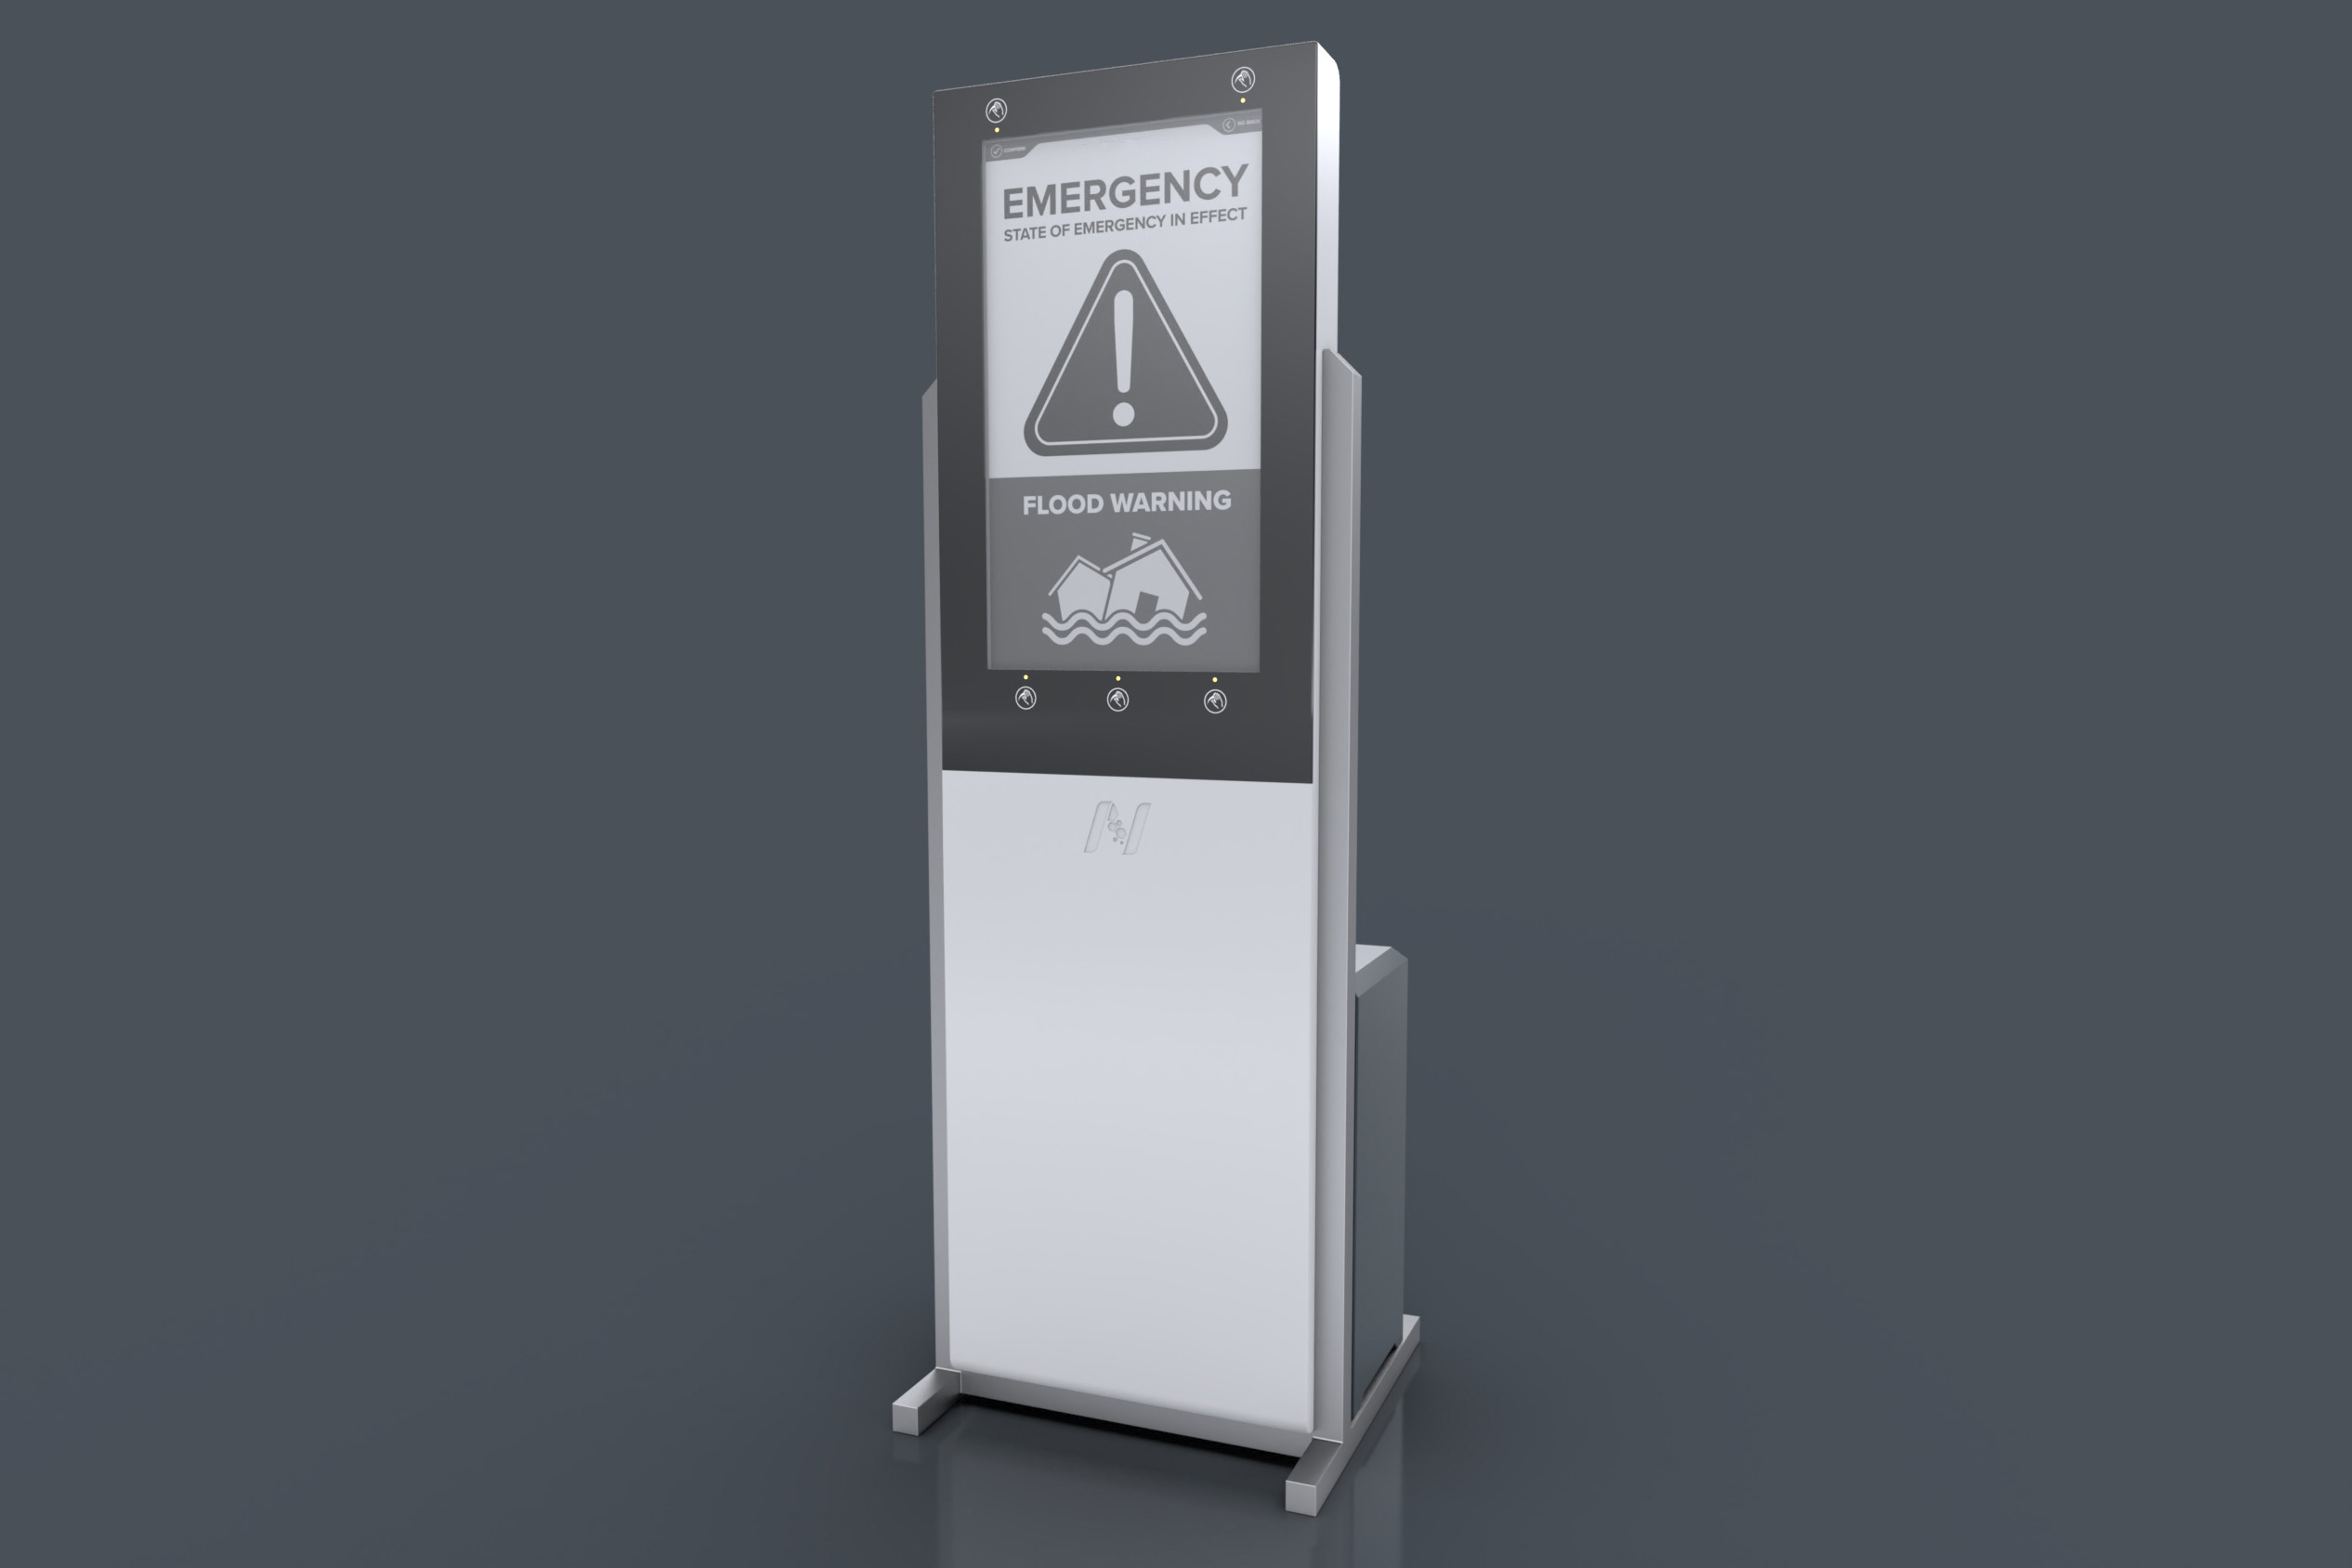 Stand alone solar powered generator Inergy device with emergency flood warning signal. Concept by Nexus Alpha LPS